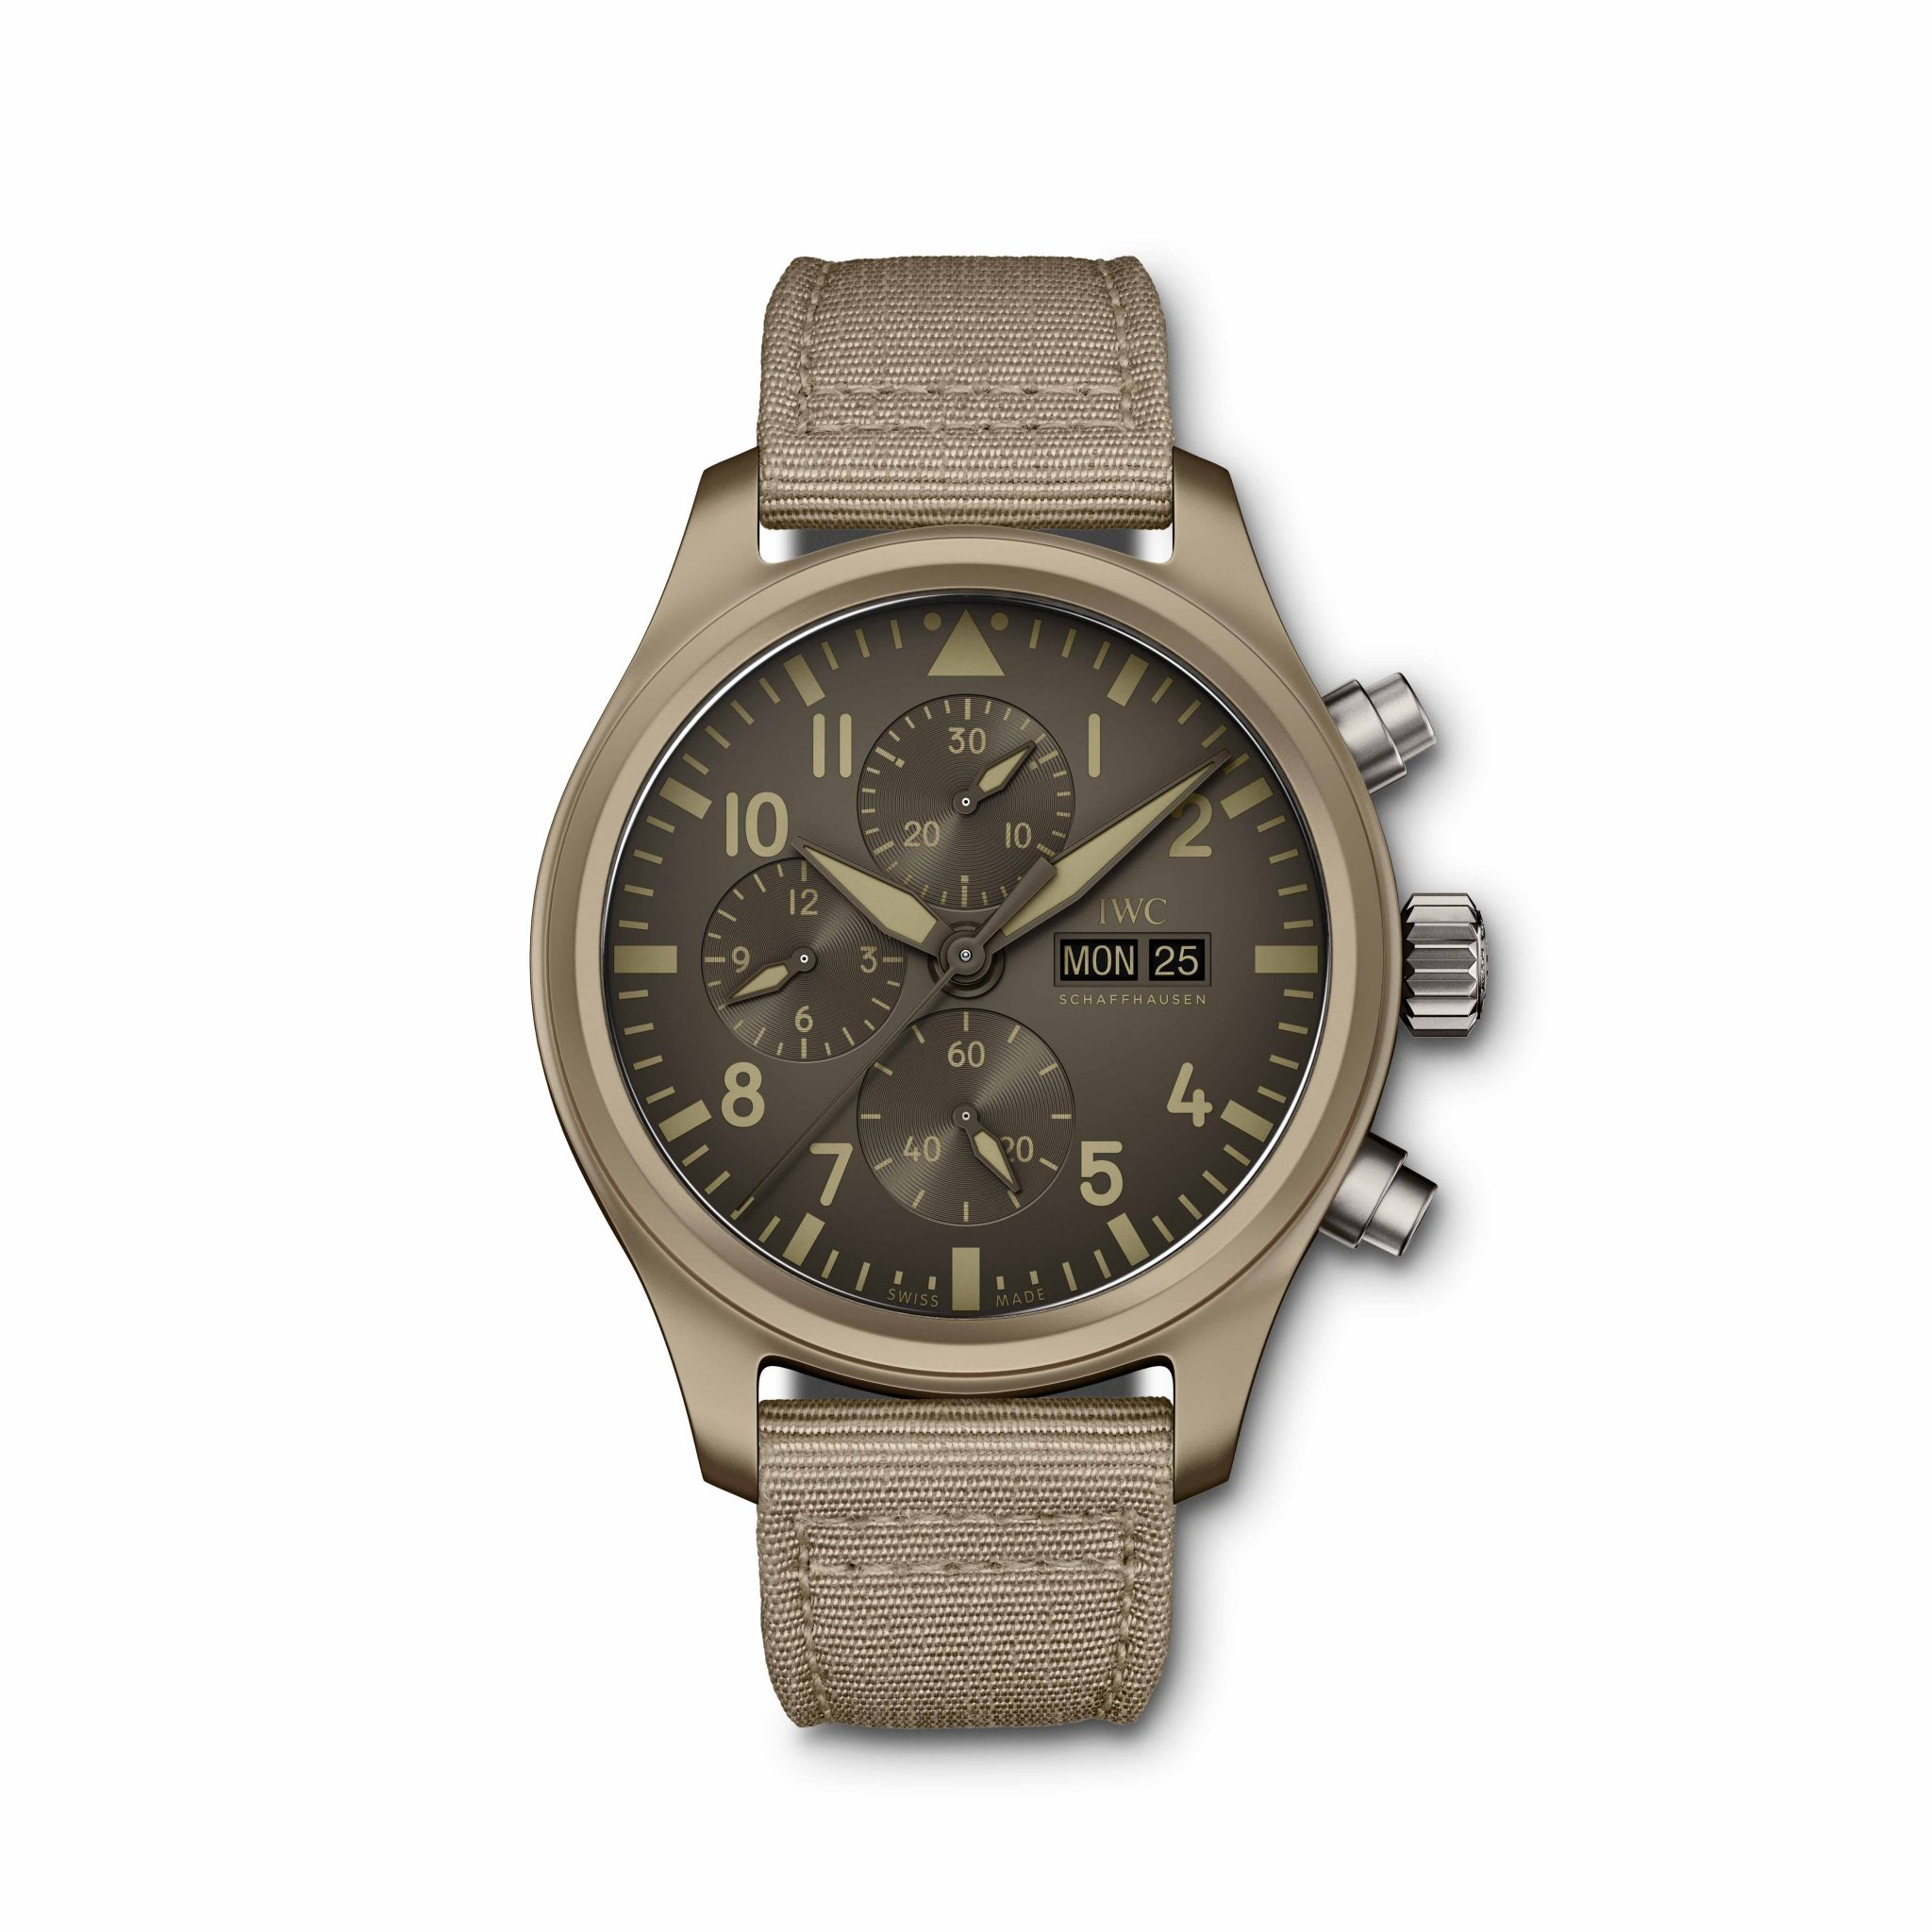 IWC-Pilots-Watch-Chronograph-TOP-GUN-Edition-Mojave-Desert-SIHH-2019